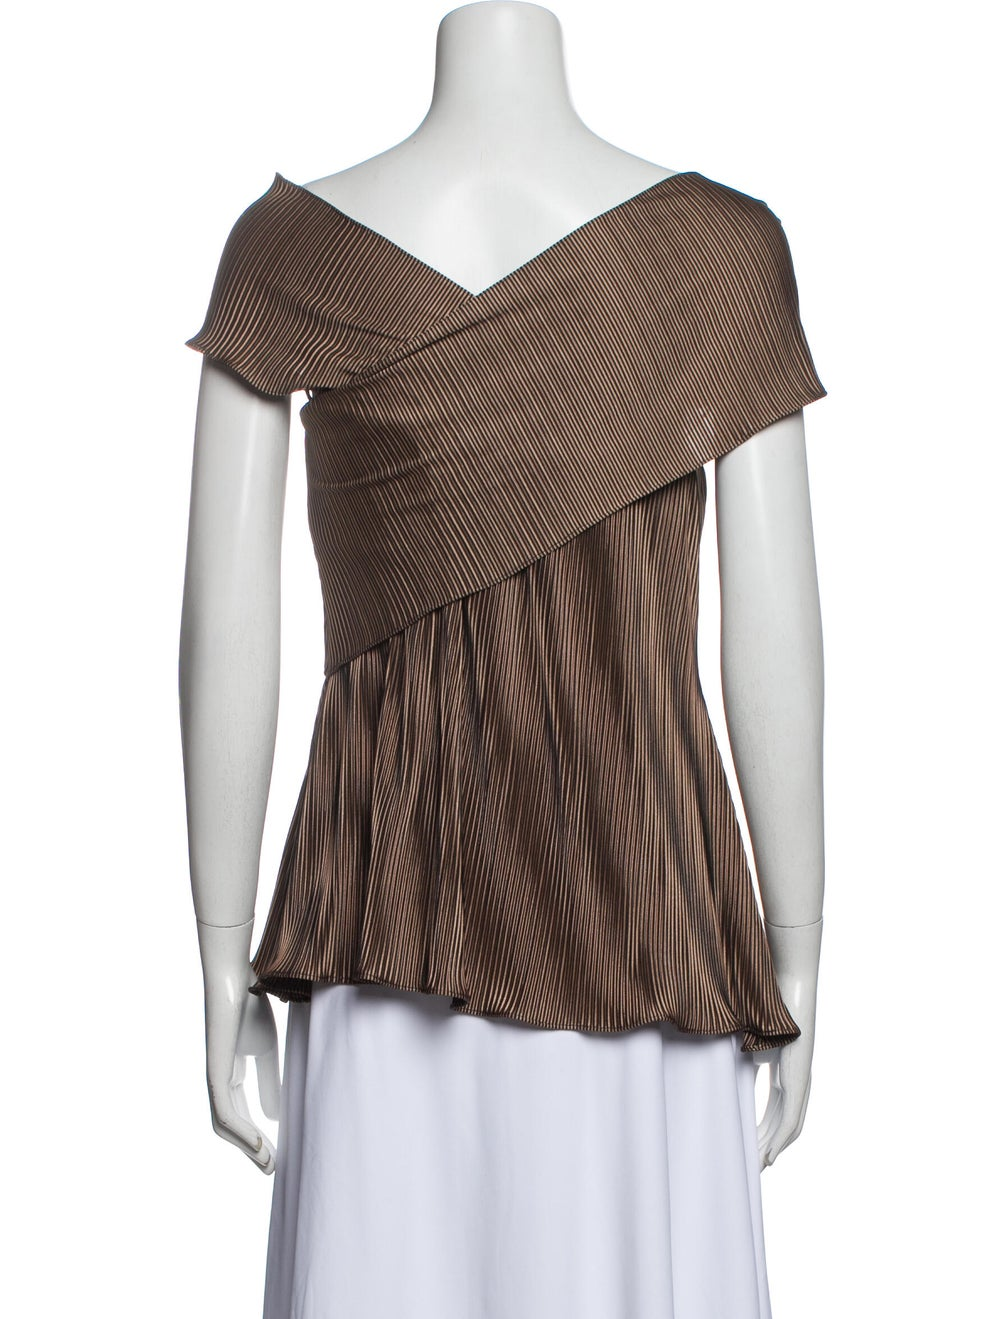 Beaufille Striped Off-The-Shoulder Top Brown - image 3